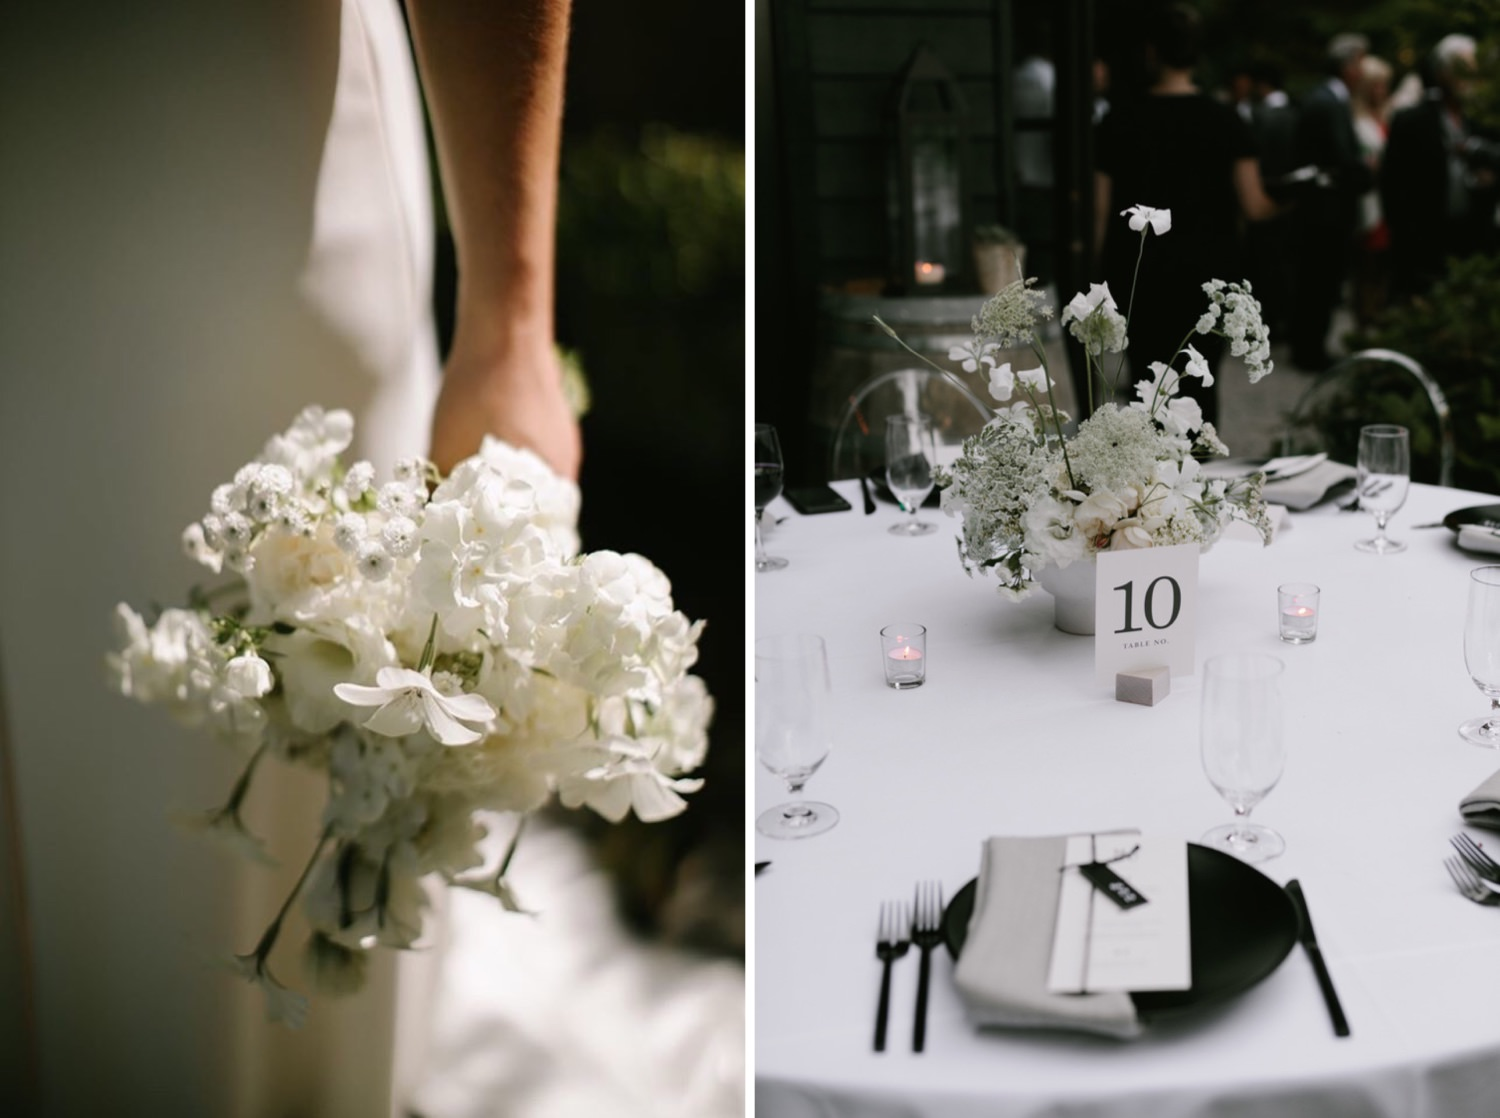 Modern black and white details at a JM Cellars wedding in Woodinville from Botanique Flowers Seattle